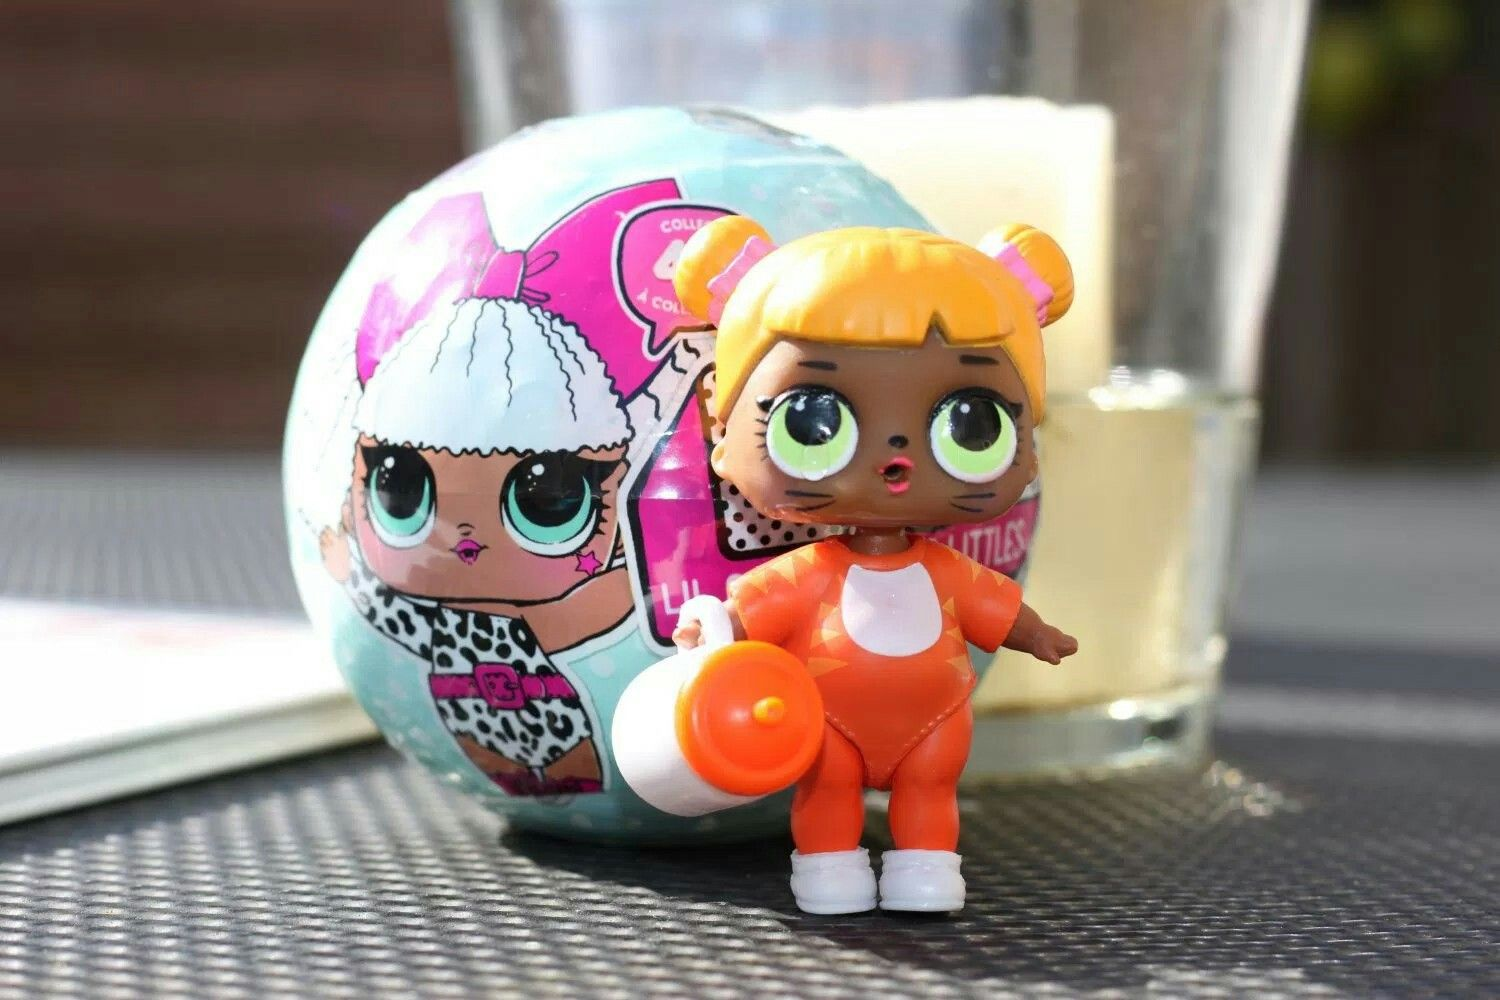 The Lol Surprise Dolls Are So Cute Chloe Pinterest Lol Dolls